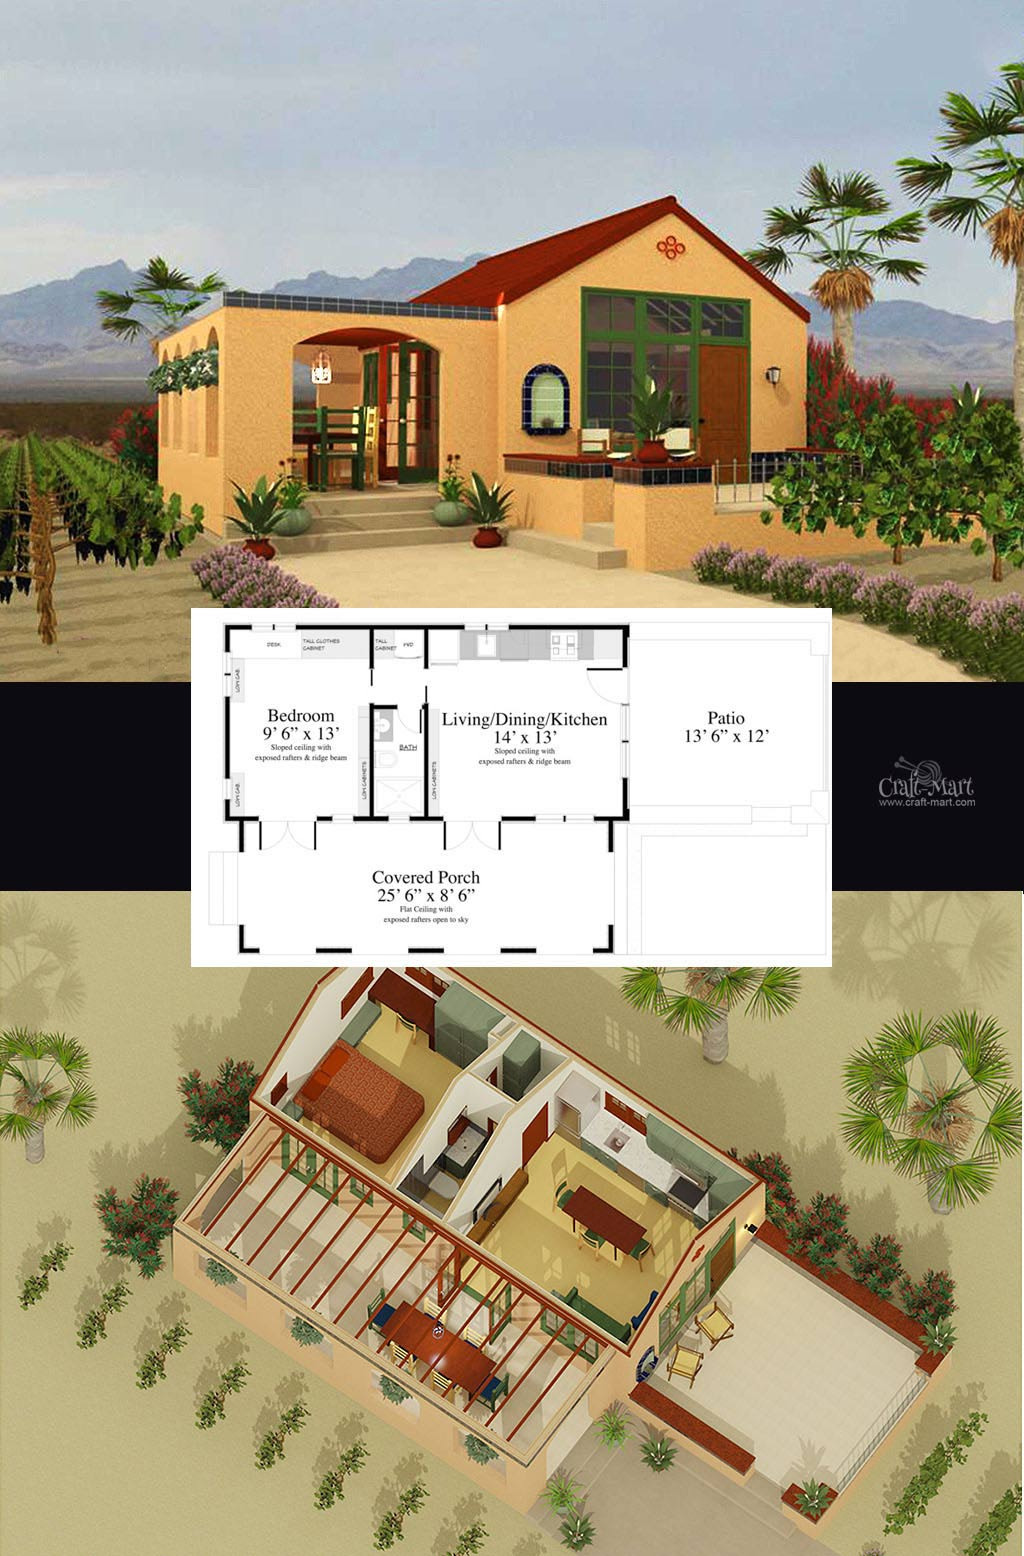 Free House Construction Plans Awesome 27 Adorable Free Tiny House Floor Plans Craft Mart